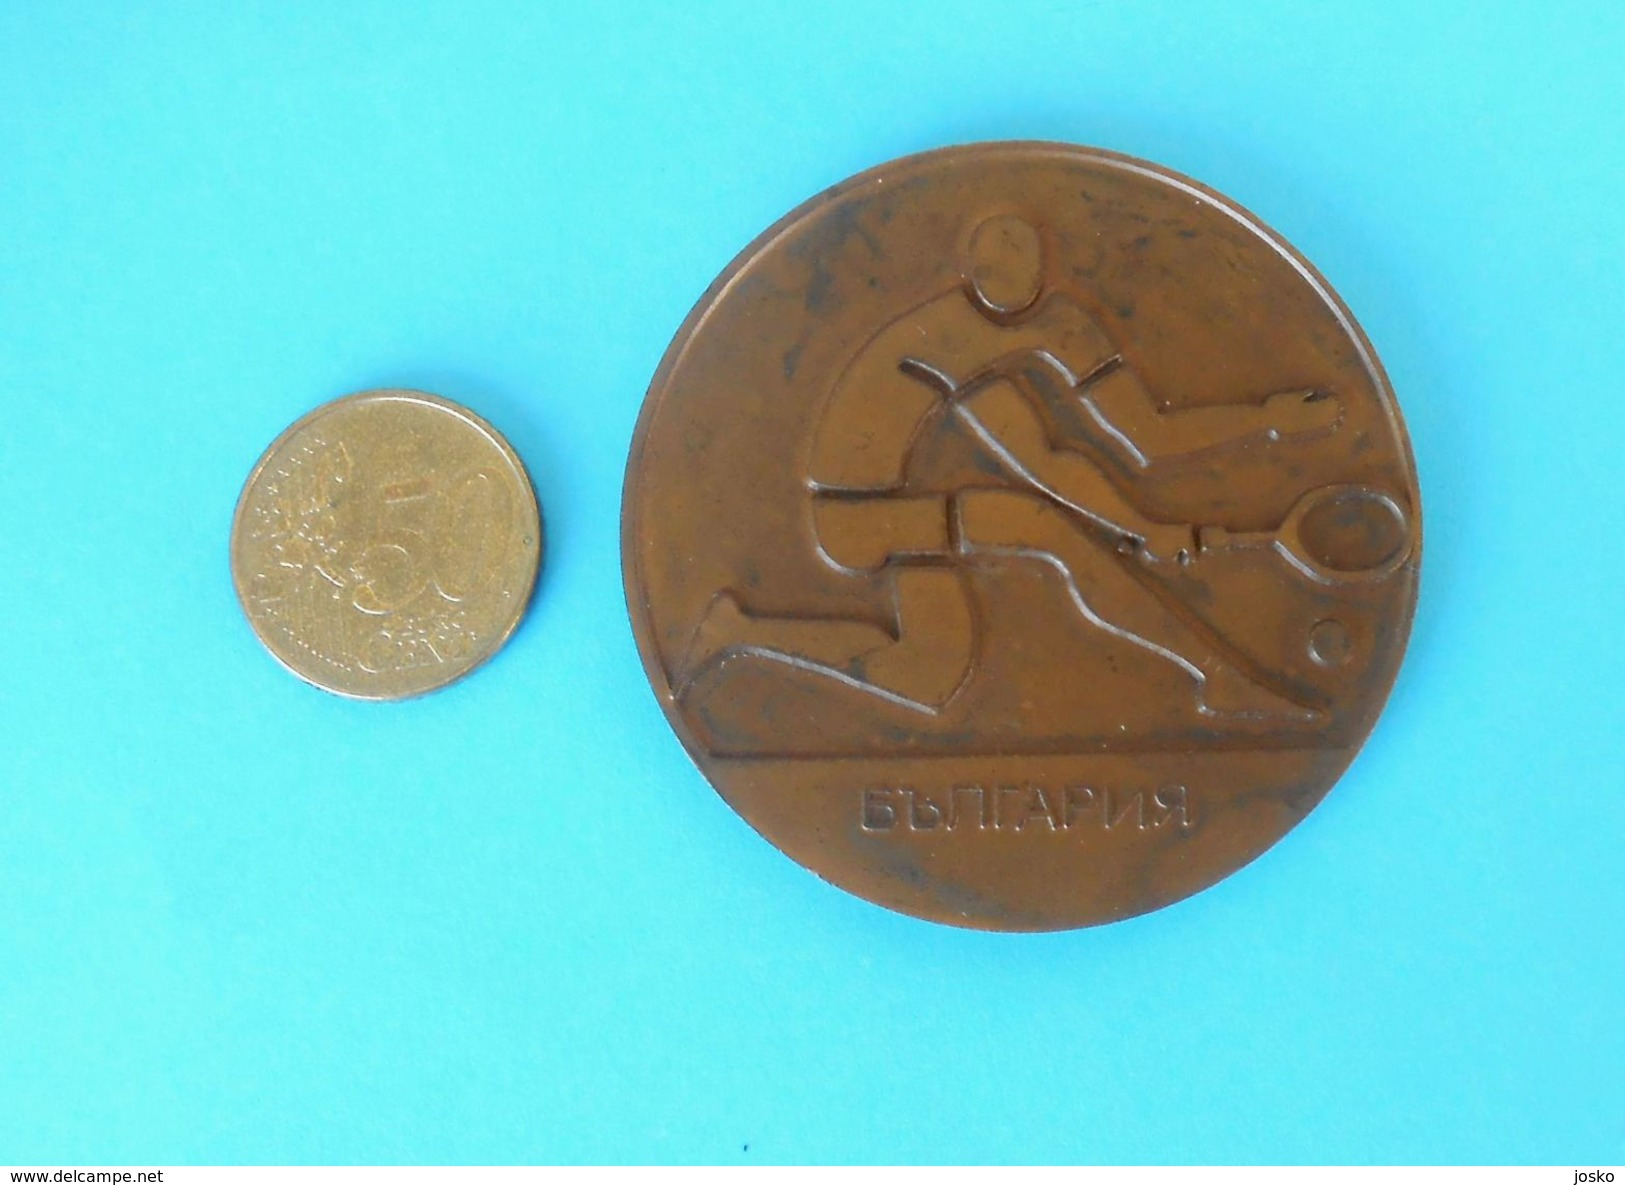 BALKAN TENNIS CHAMPIONSHIPS - 1981. PLOVDIV ... Old Rare Large Massive Official Participant Medal * Tenis Sport - Apparel, Souvenirs & Other